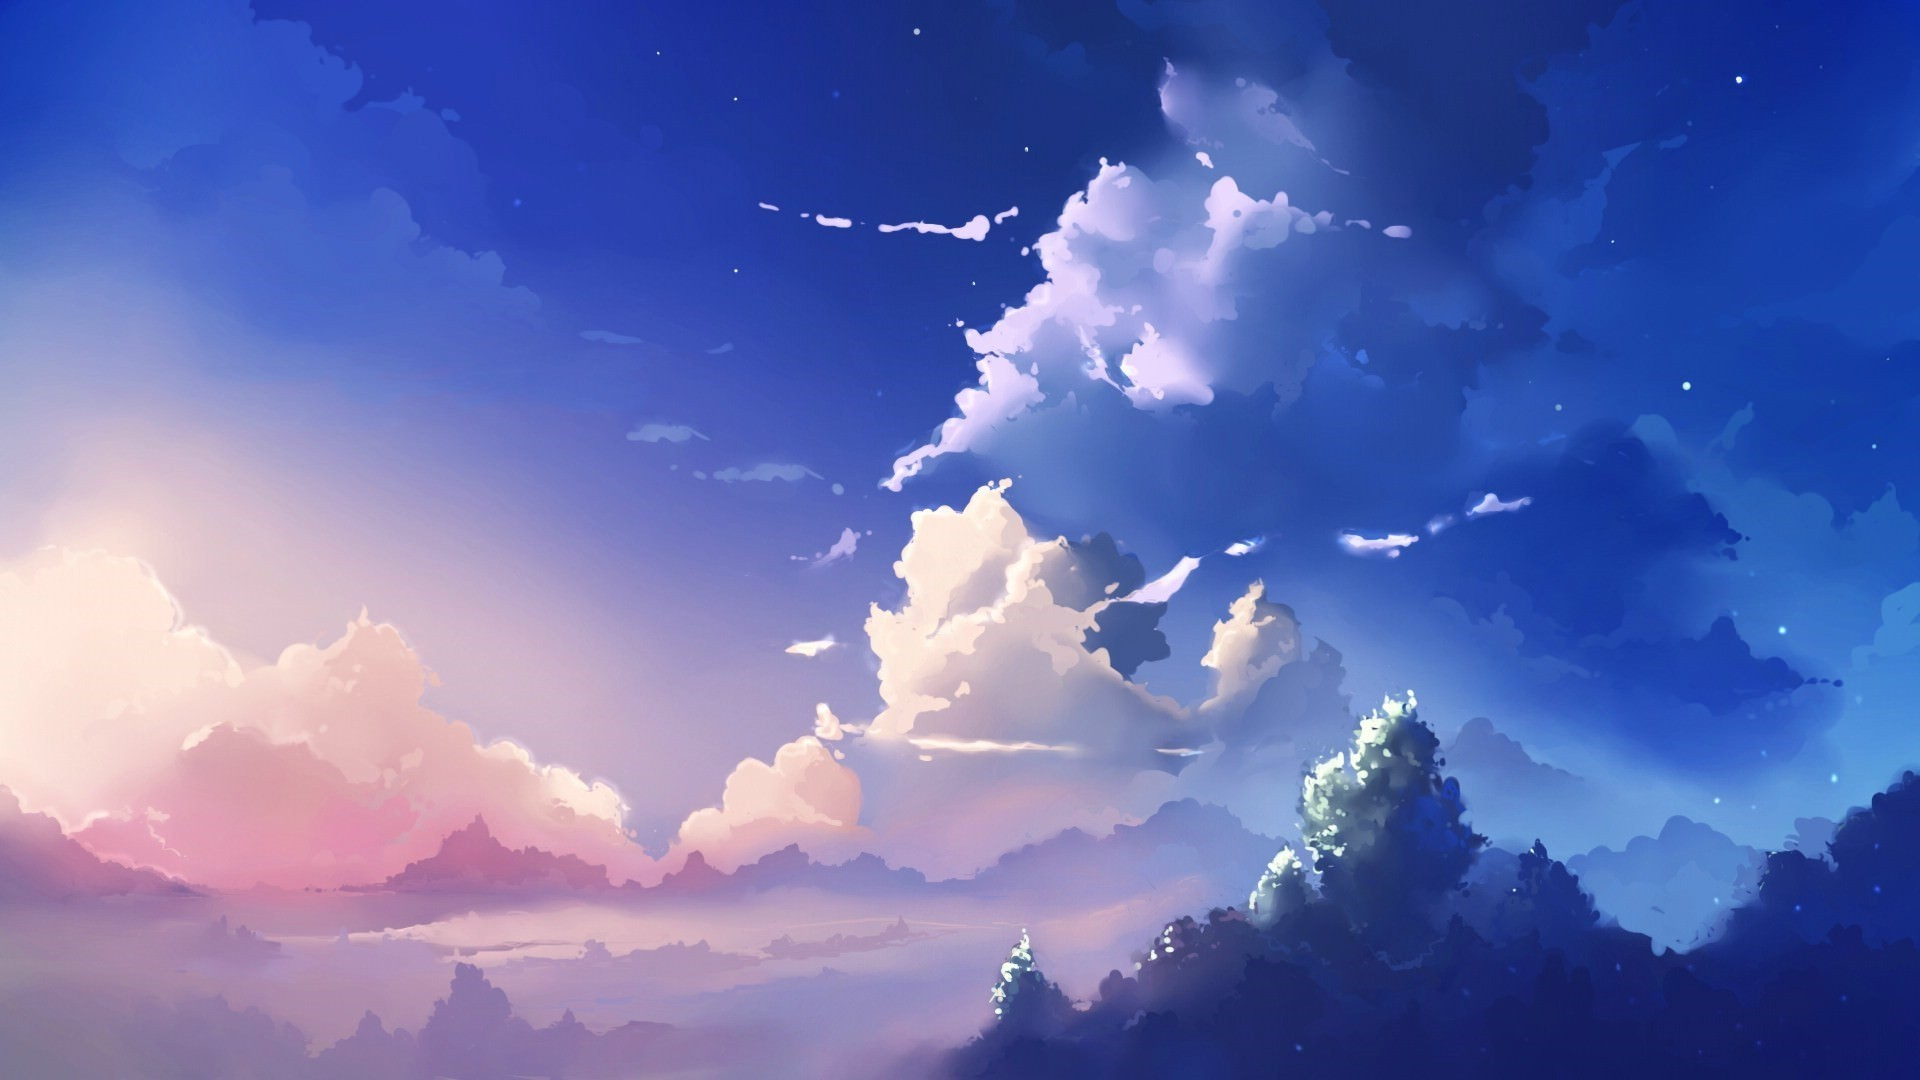 Anime Clouds Free Wallpaper and Background